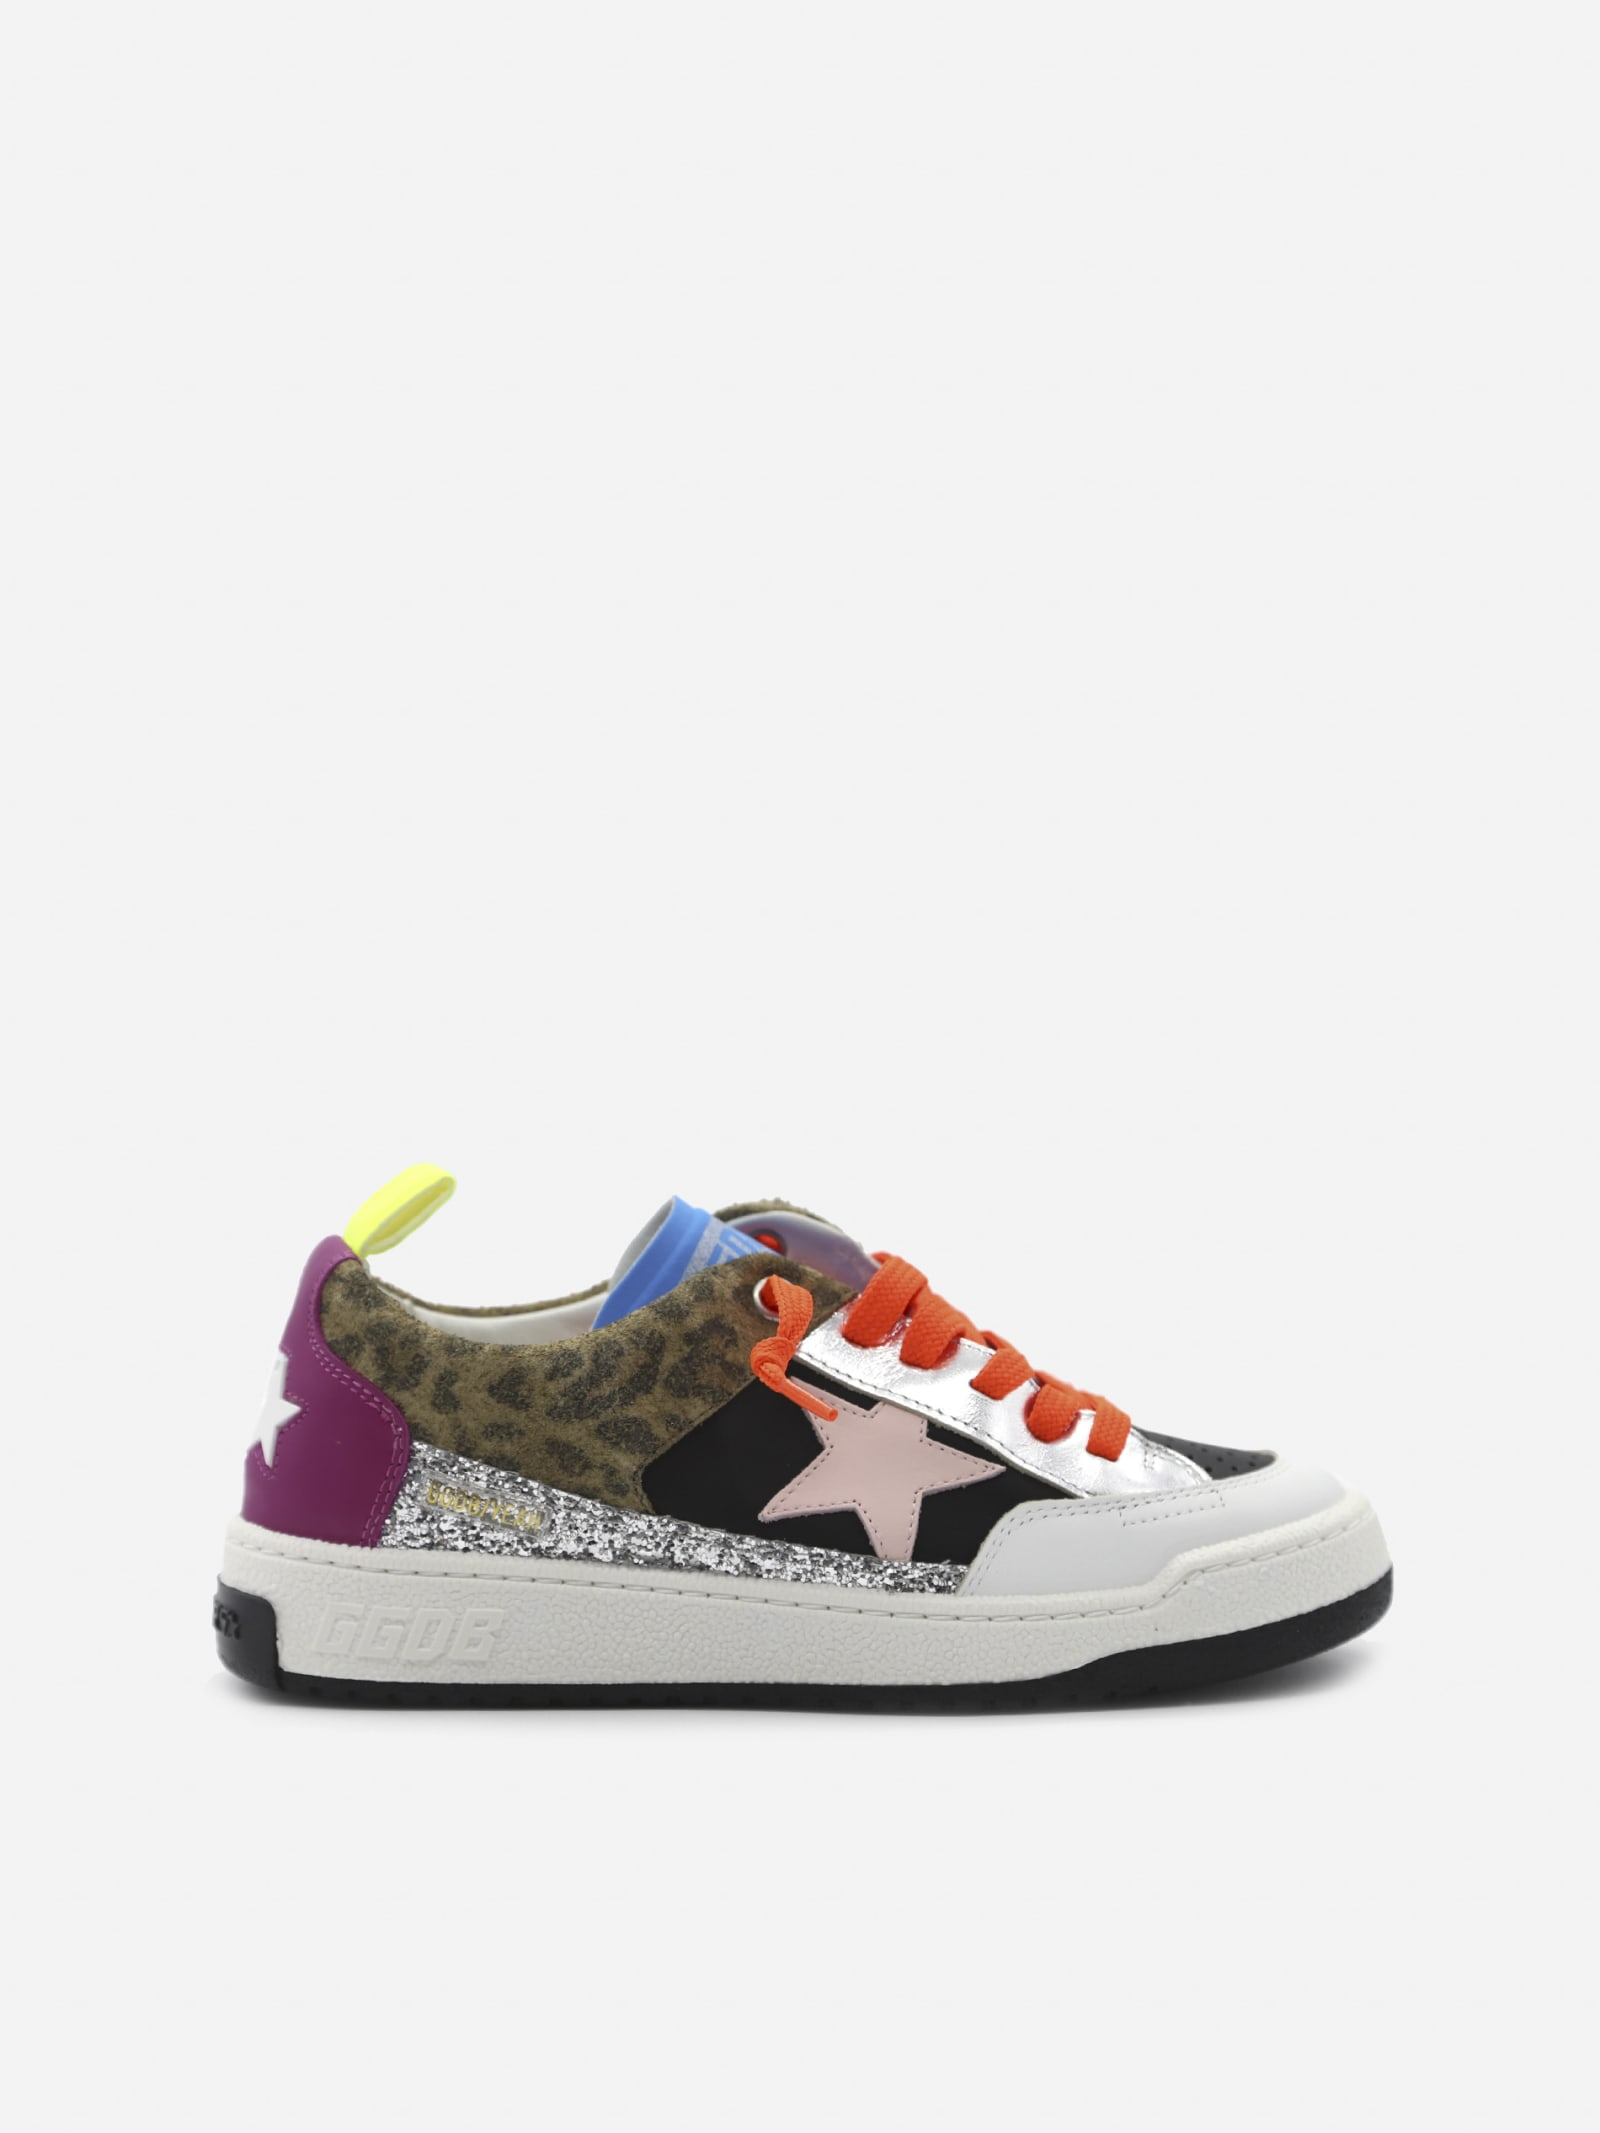 Golden Goose Yeah Sneakers In Leather With Glitter And Animalier Inserts